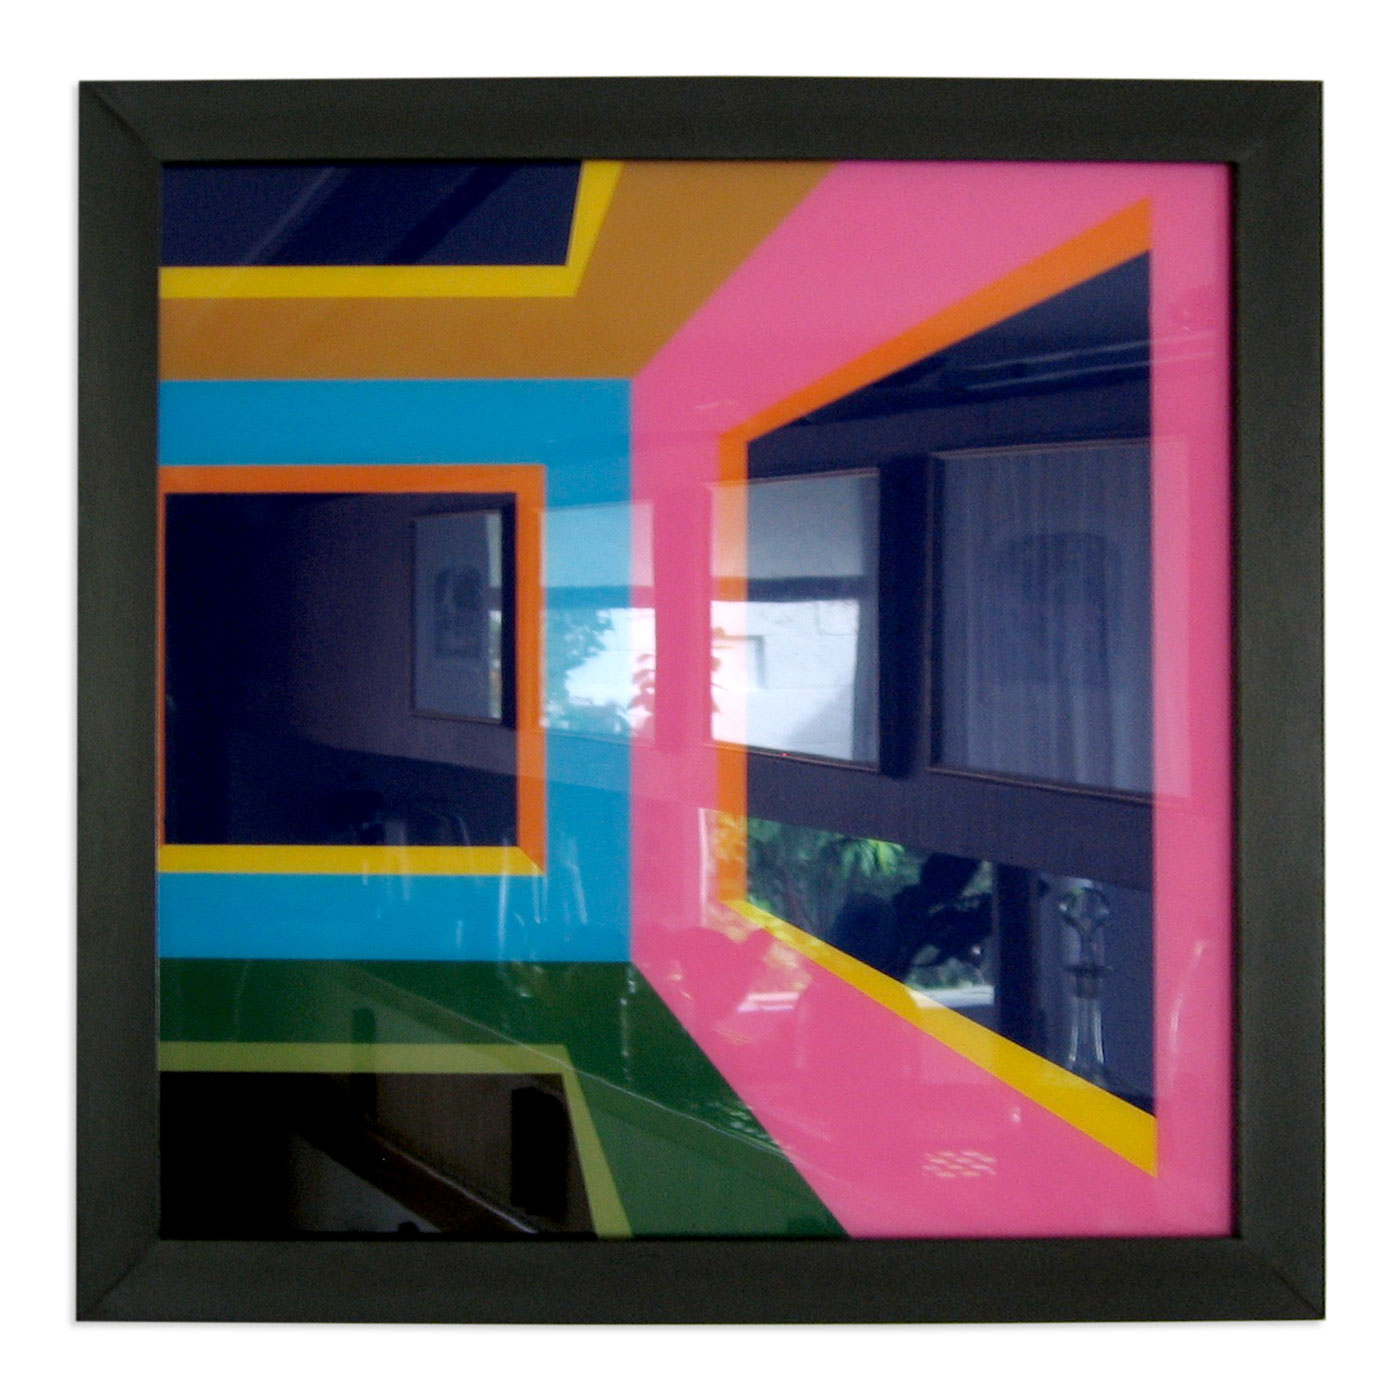 INSIDE THE CUBE BY NIGHT - RIGHT,  © 2005, acrylic paint behind glass, framed, black, 30 x 30 cm